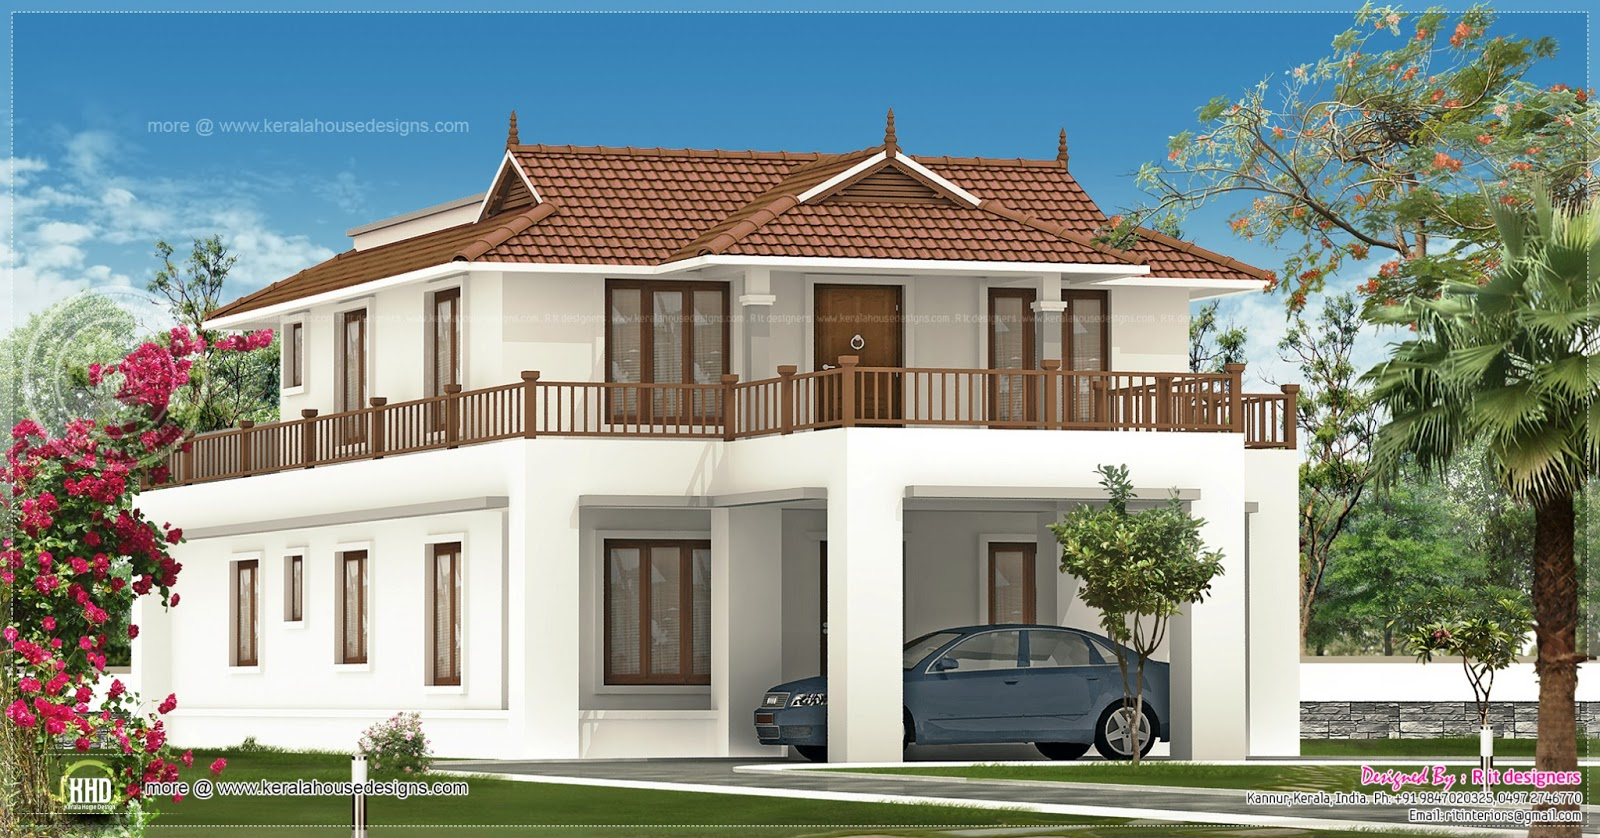 2820 square feet house exterior design home kerala plans for External design house